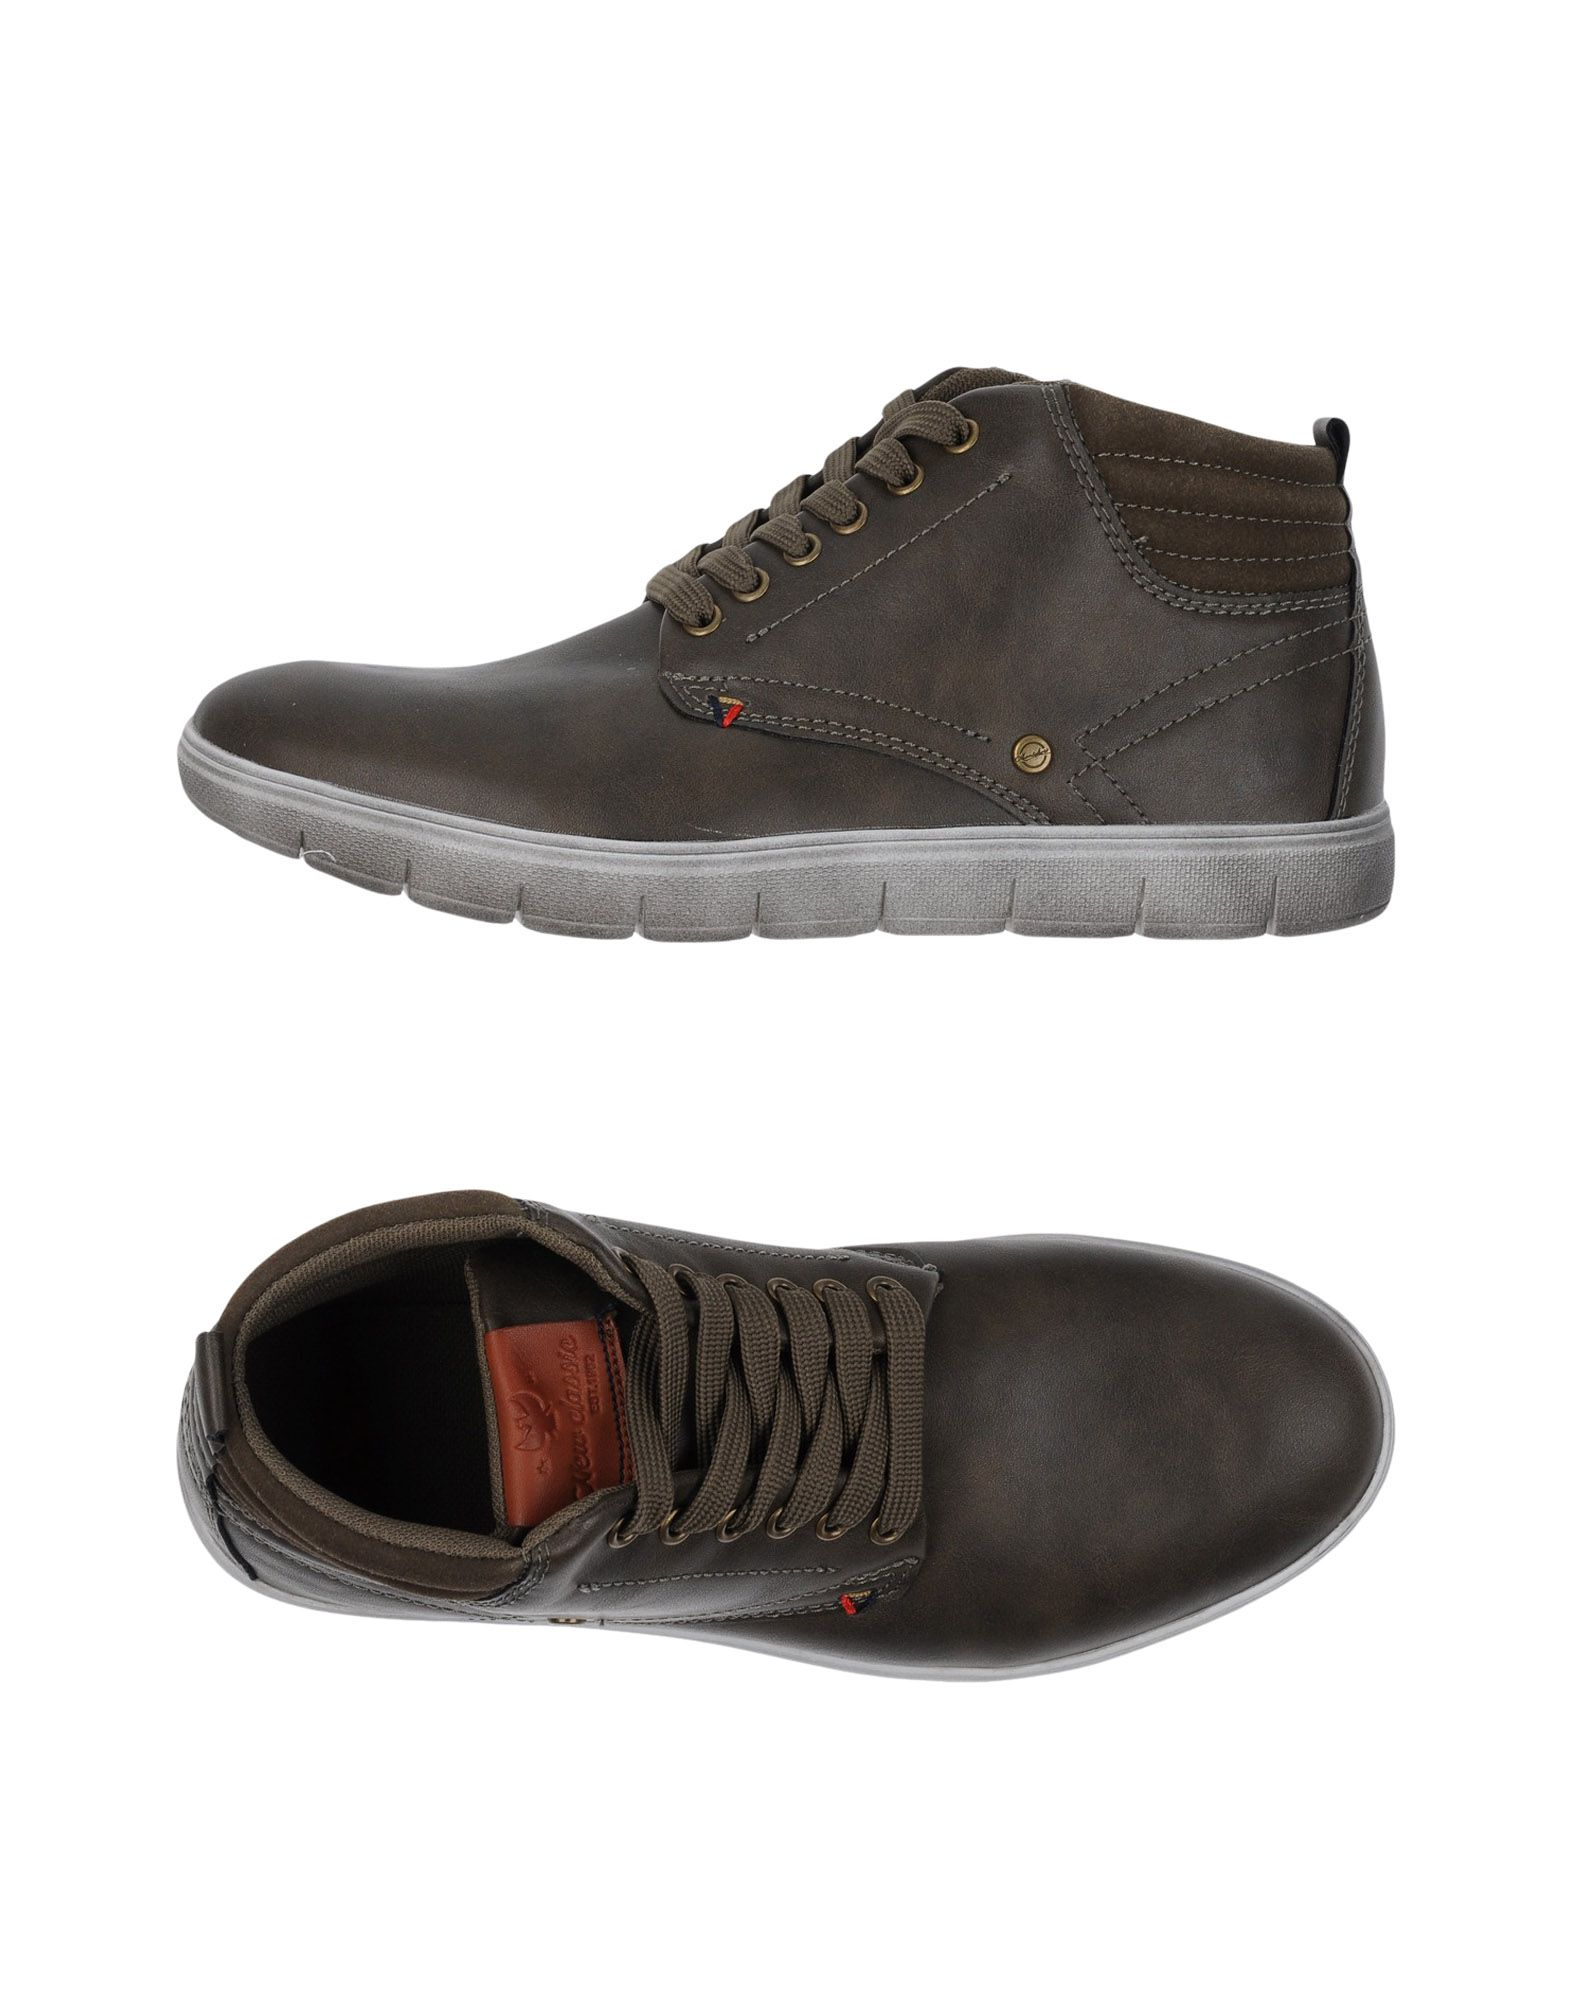 Montefiori Sneakers - Men Montefiori United Sneakers online on  United Montefiori Kingdom - 11248607QK 8a6a06